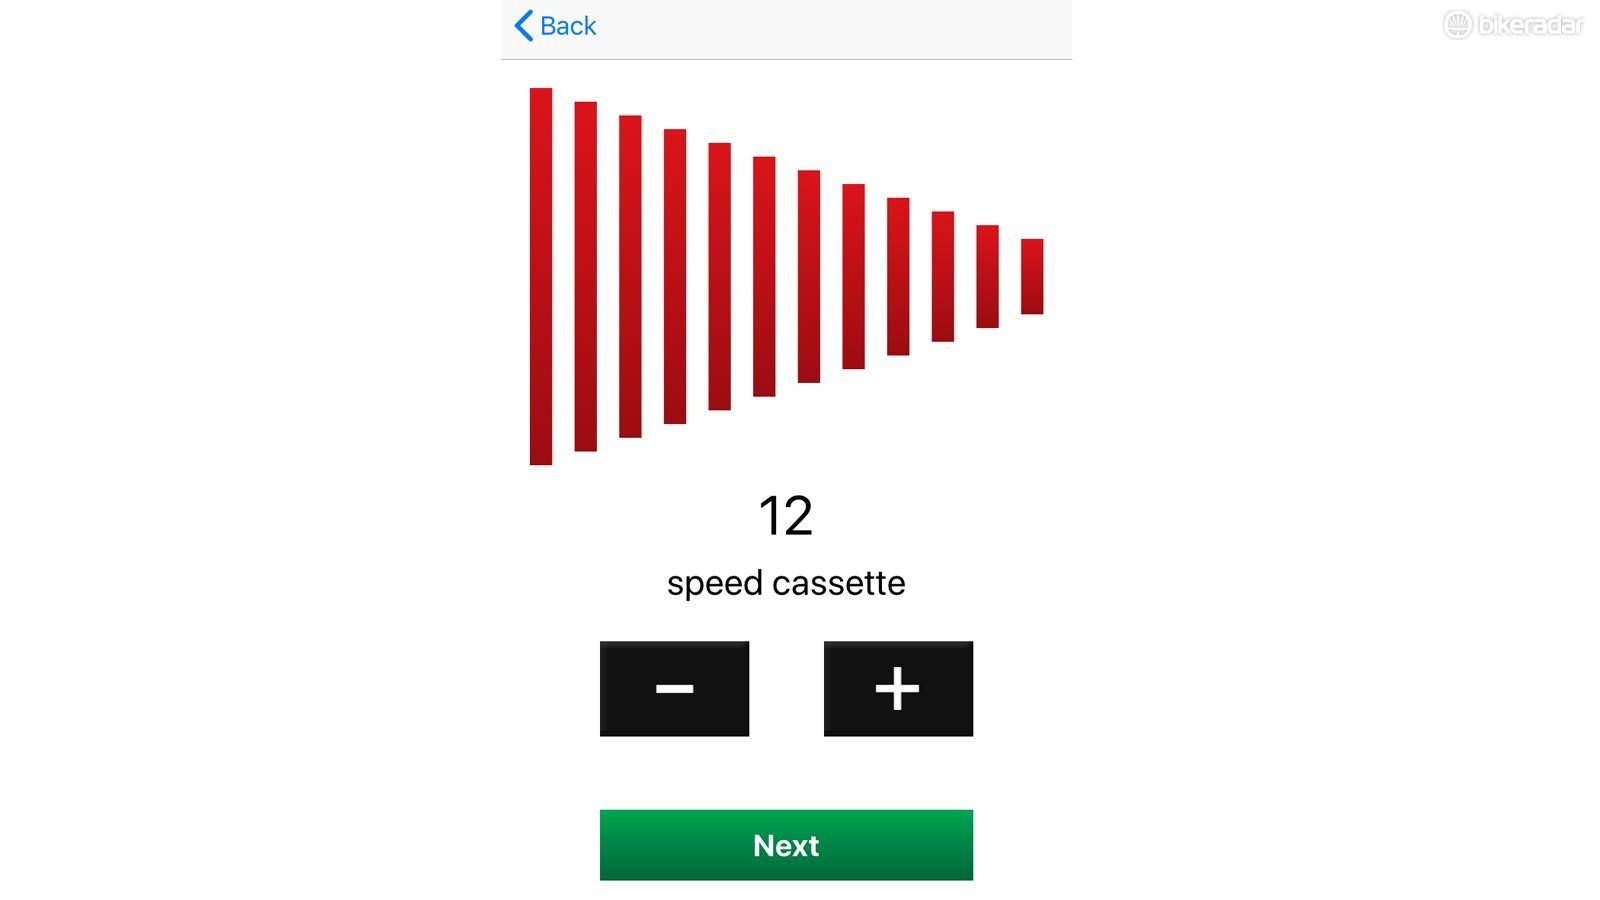 The app lets you choose between one and 20 gears